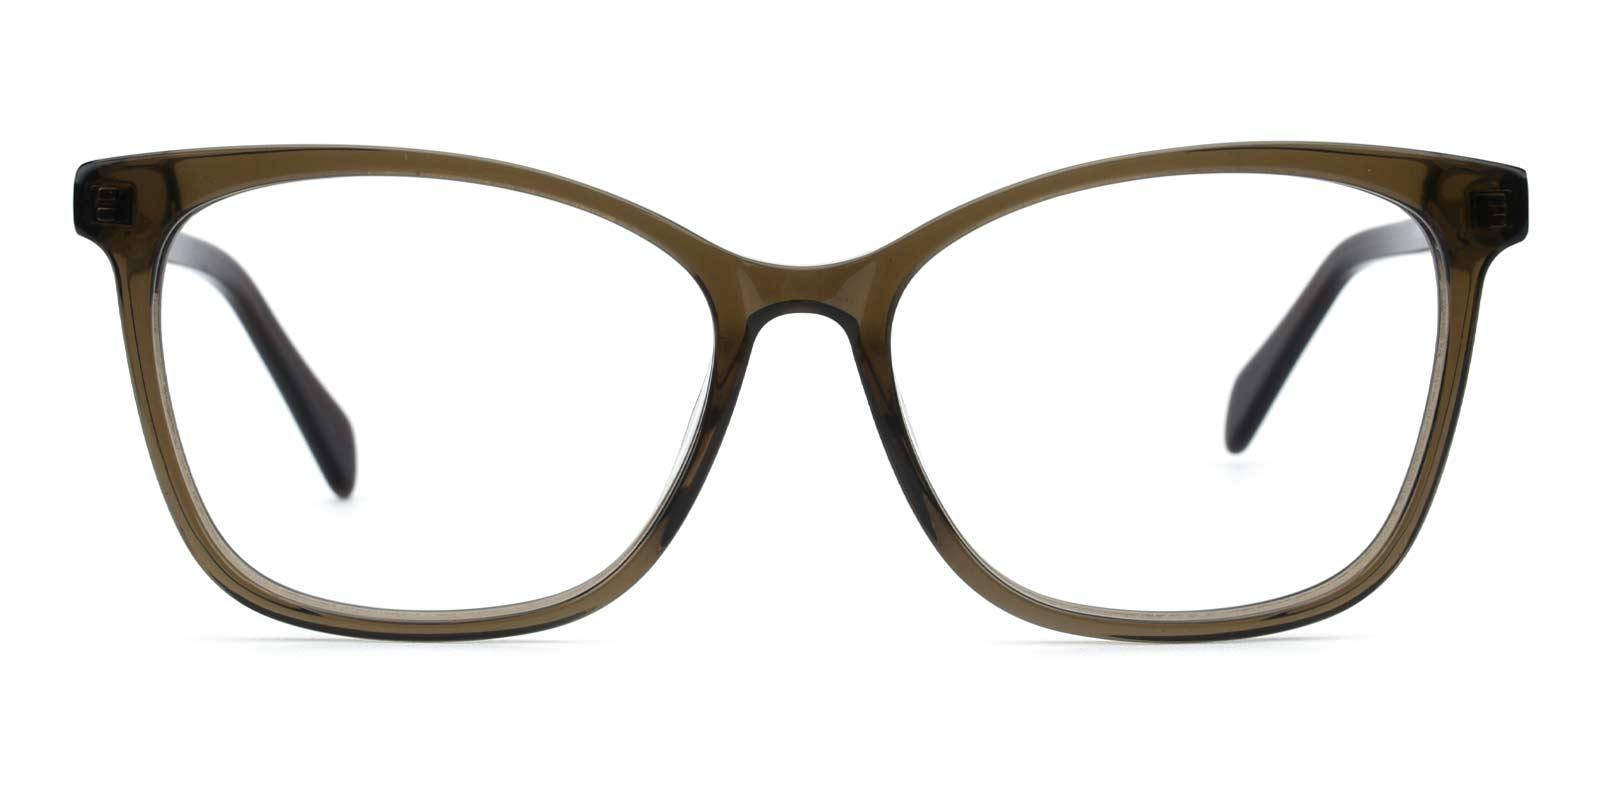 Poppy-Green-Square-Acetate-Eyeglasses-additional2